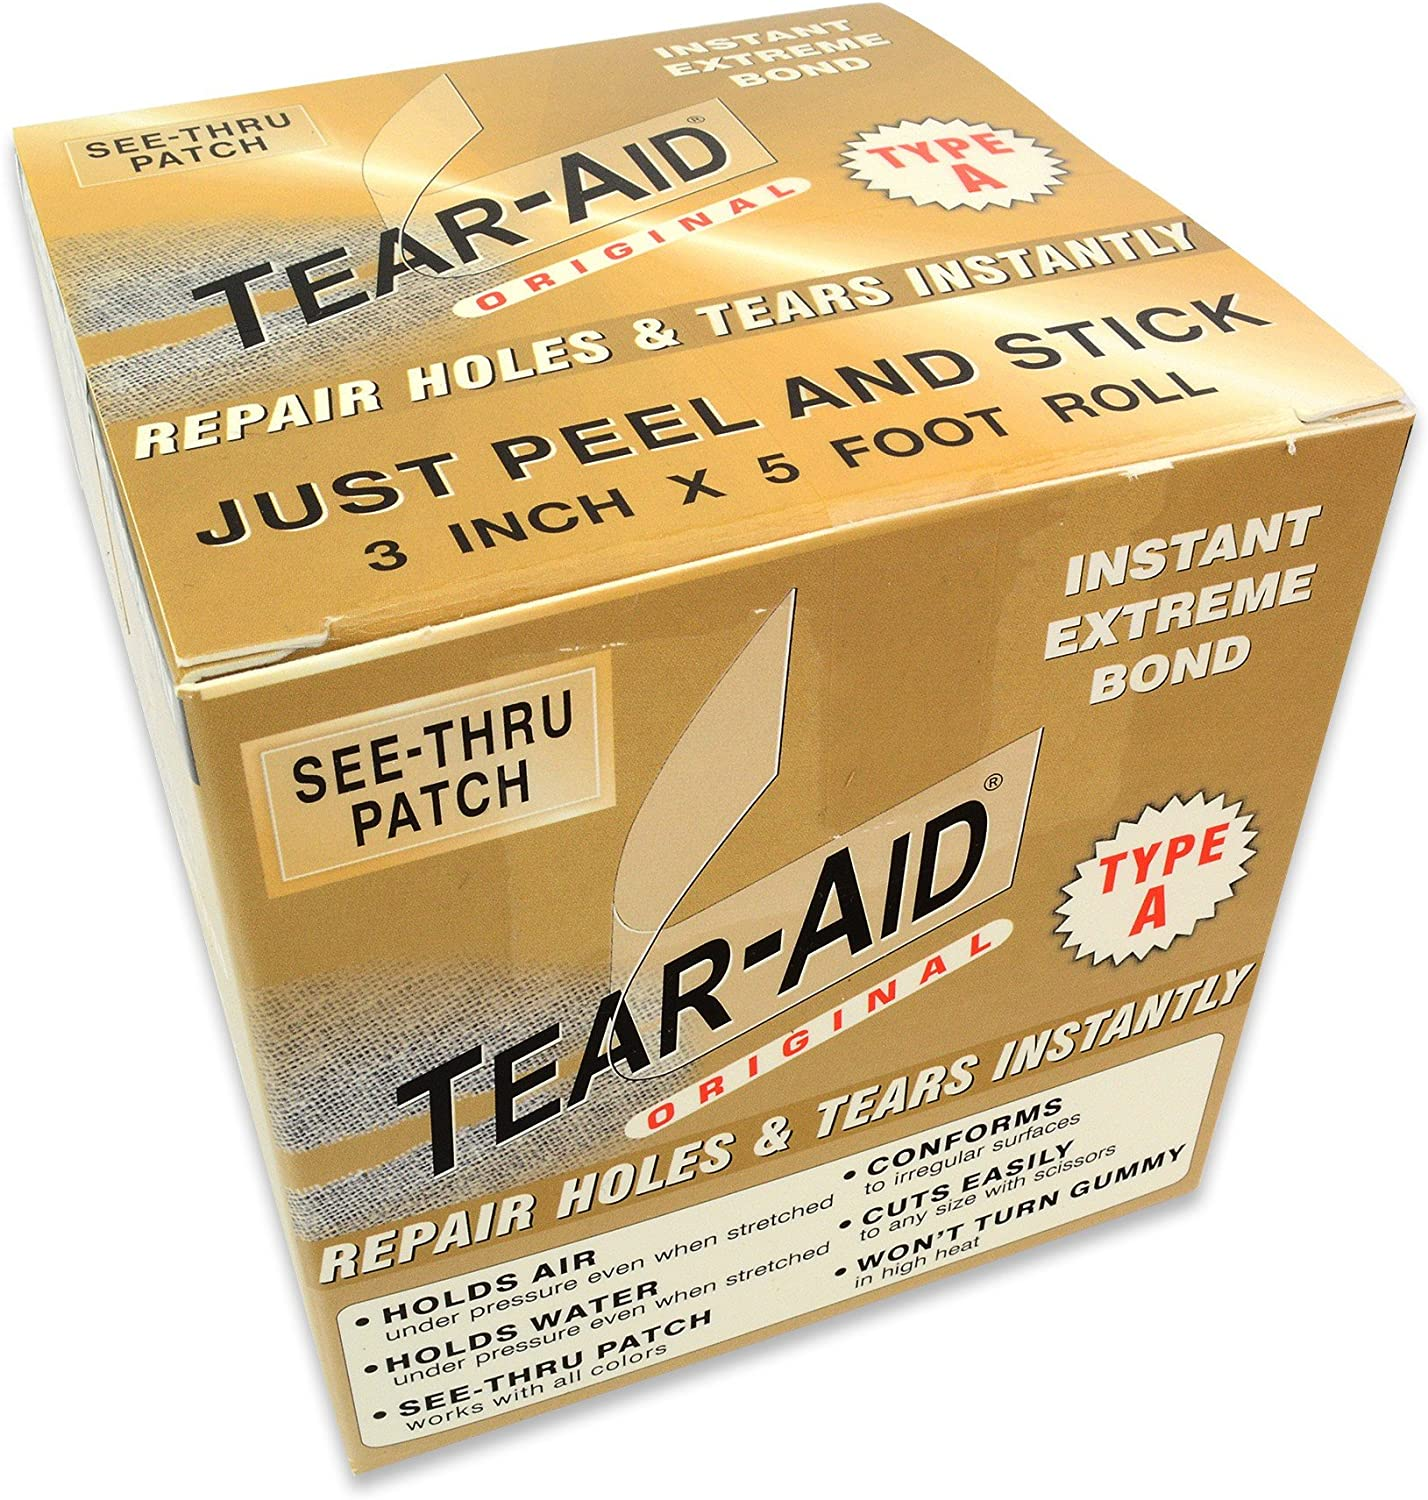 Tear Aid Tape Type A/  / 5/ Foot Roll By Tear-Aid Type A/  / 5/ Foot Roll